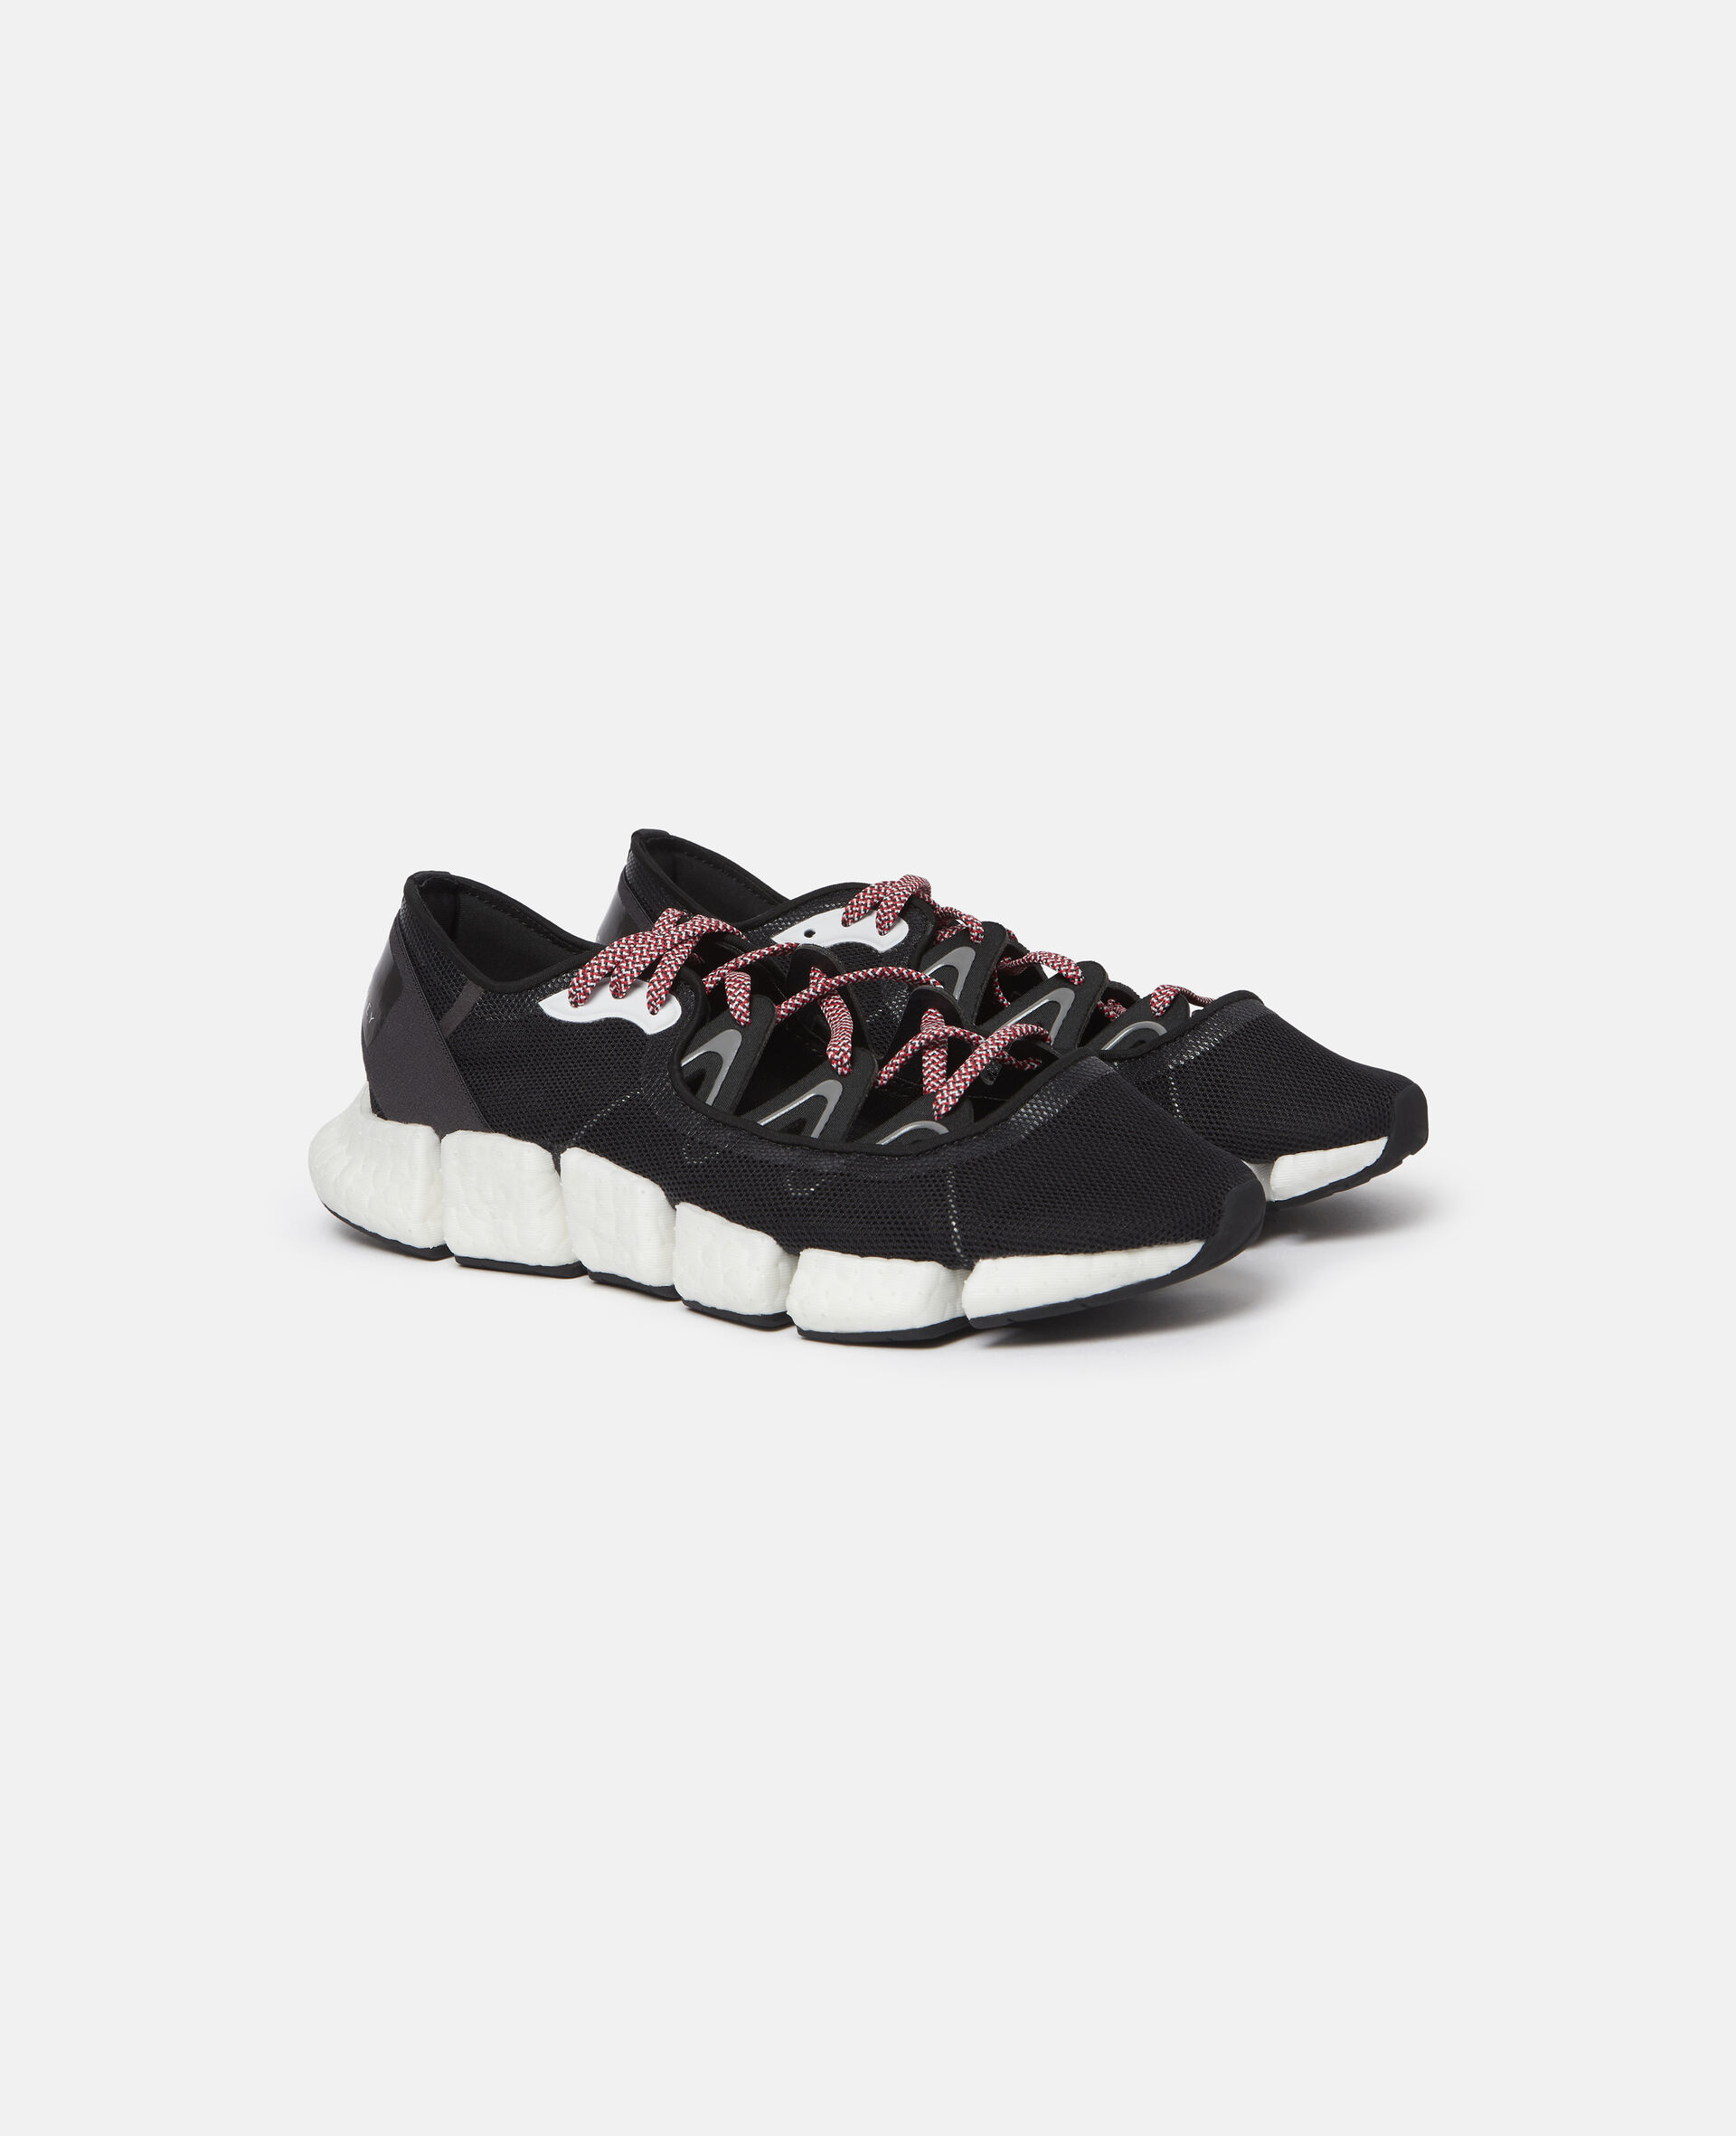 Climacool Vento 3-in-1 Running Sneakers-Multicolour-large image number 3